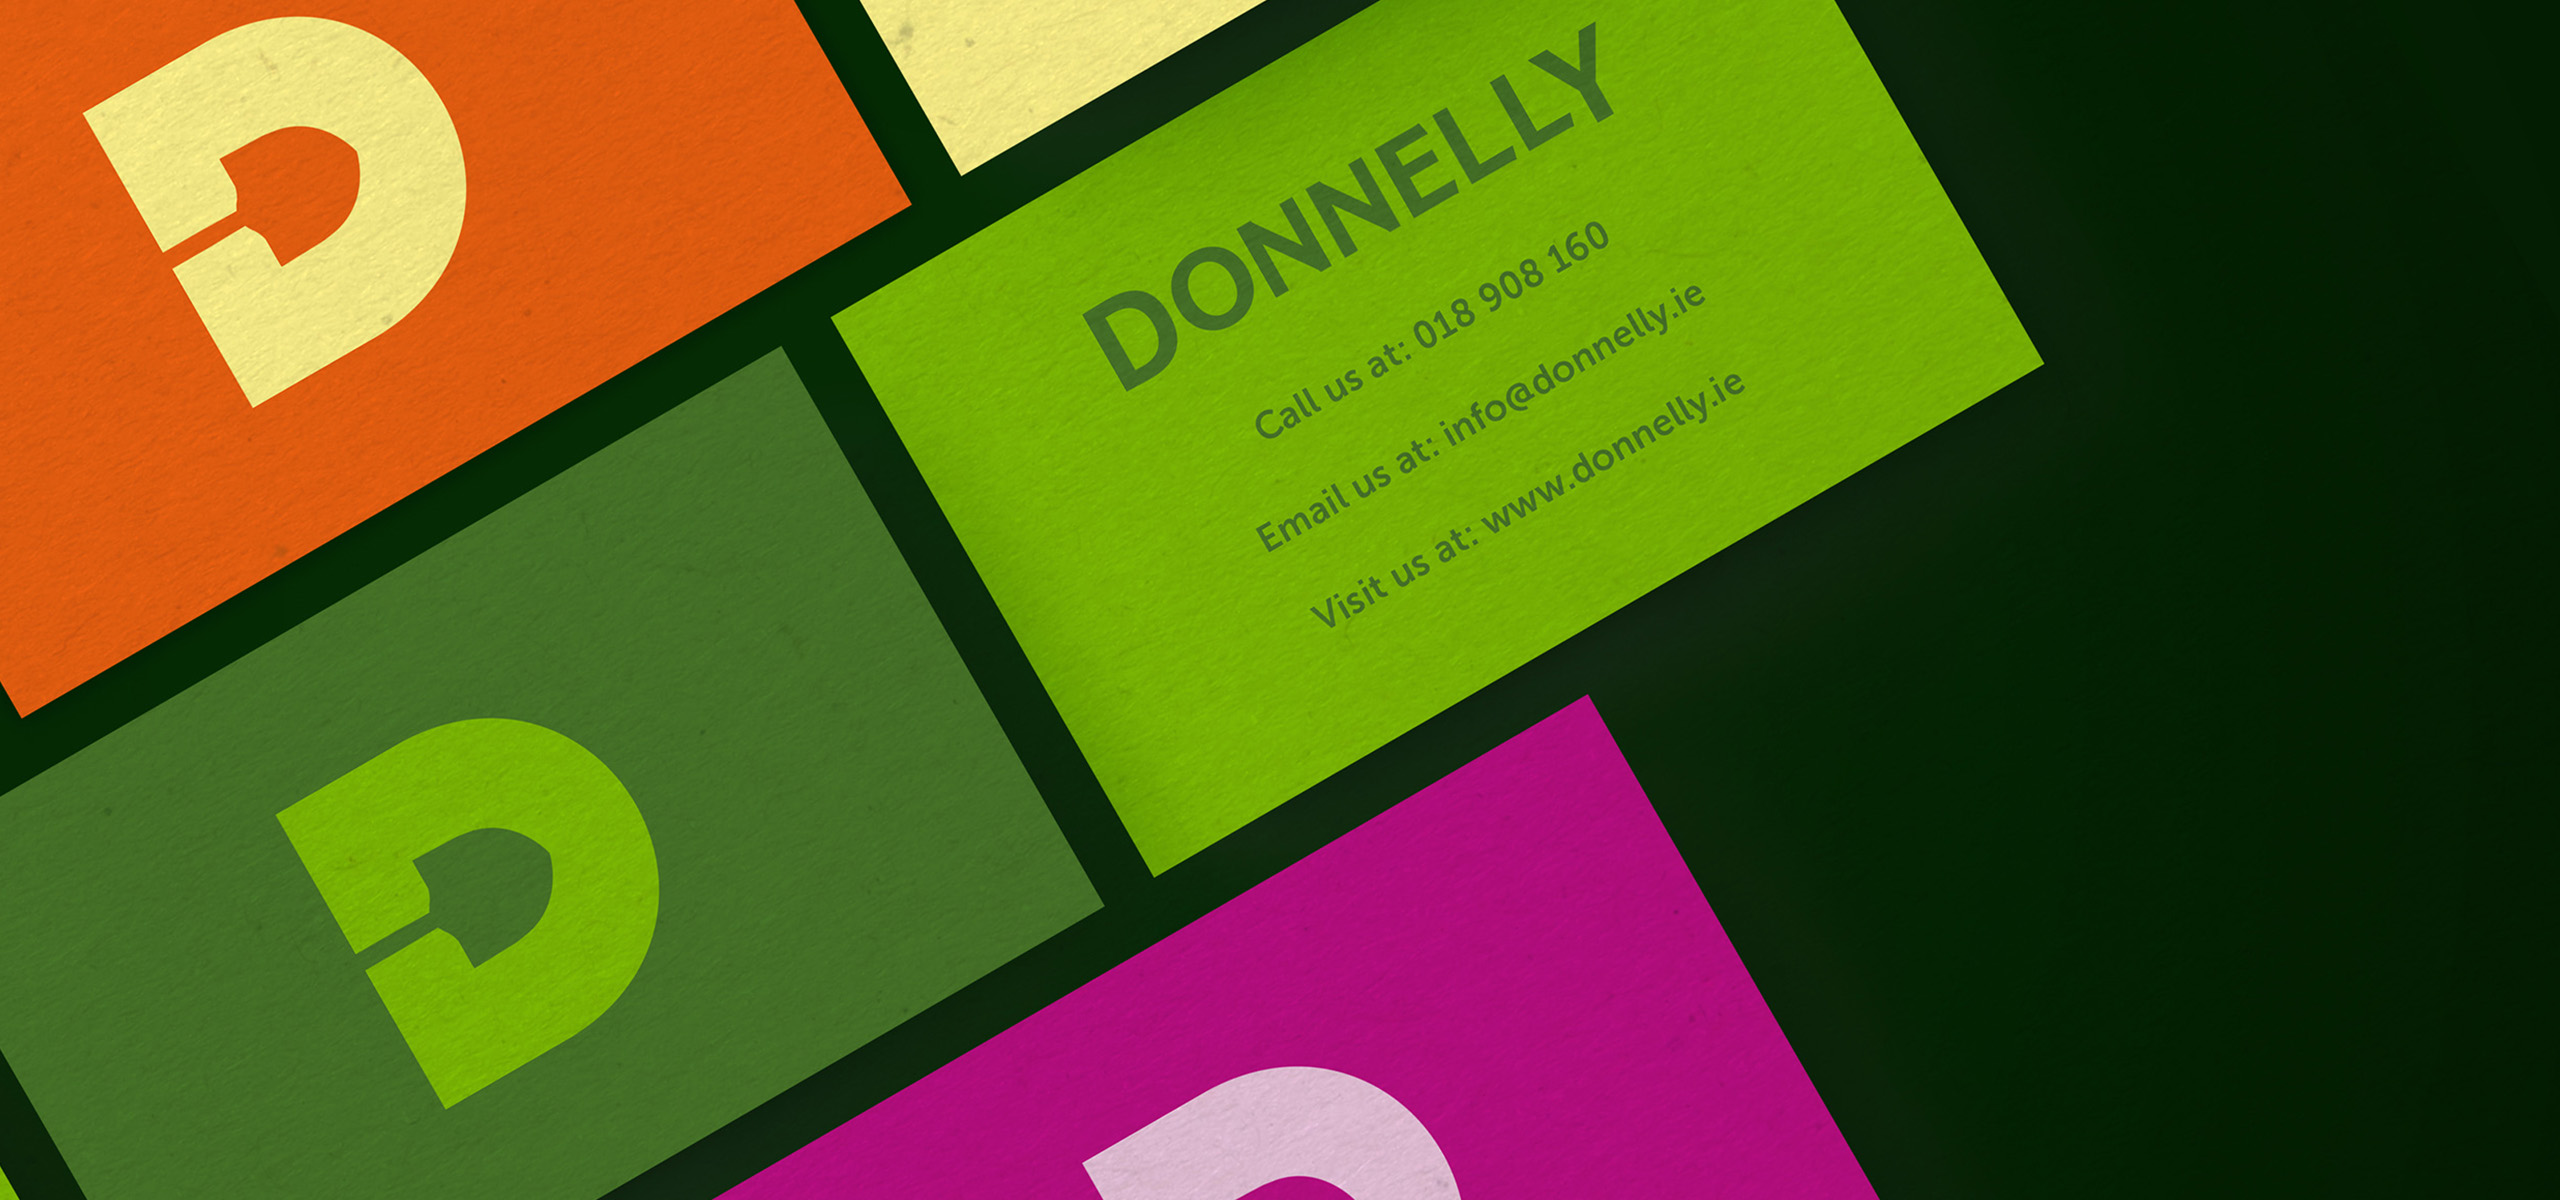 Business cards for food brand Donnelly, designed by White Bear Studio